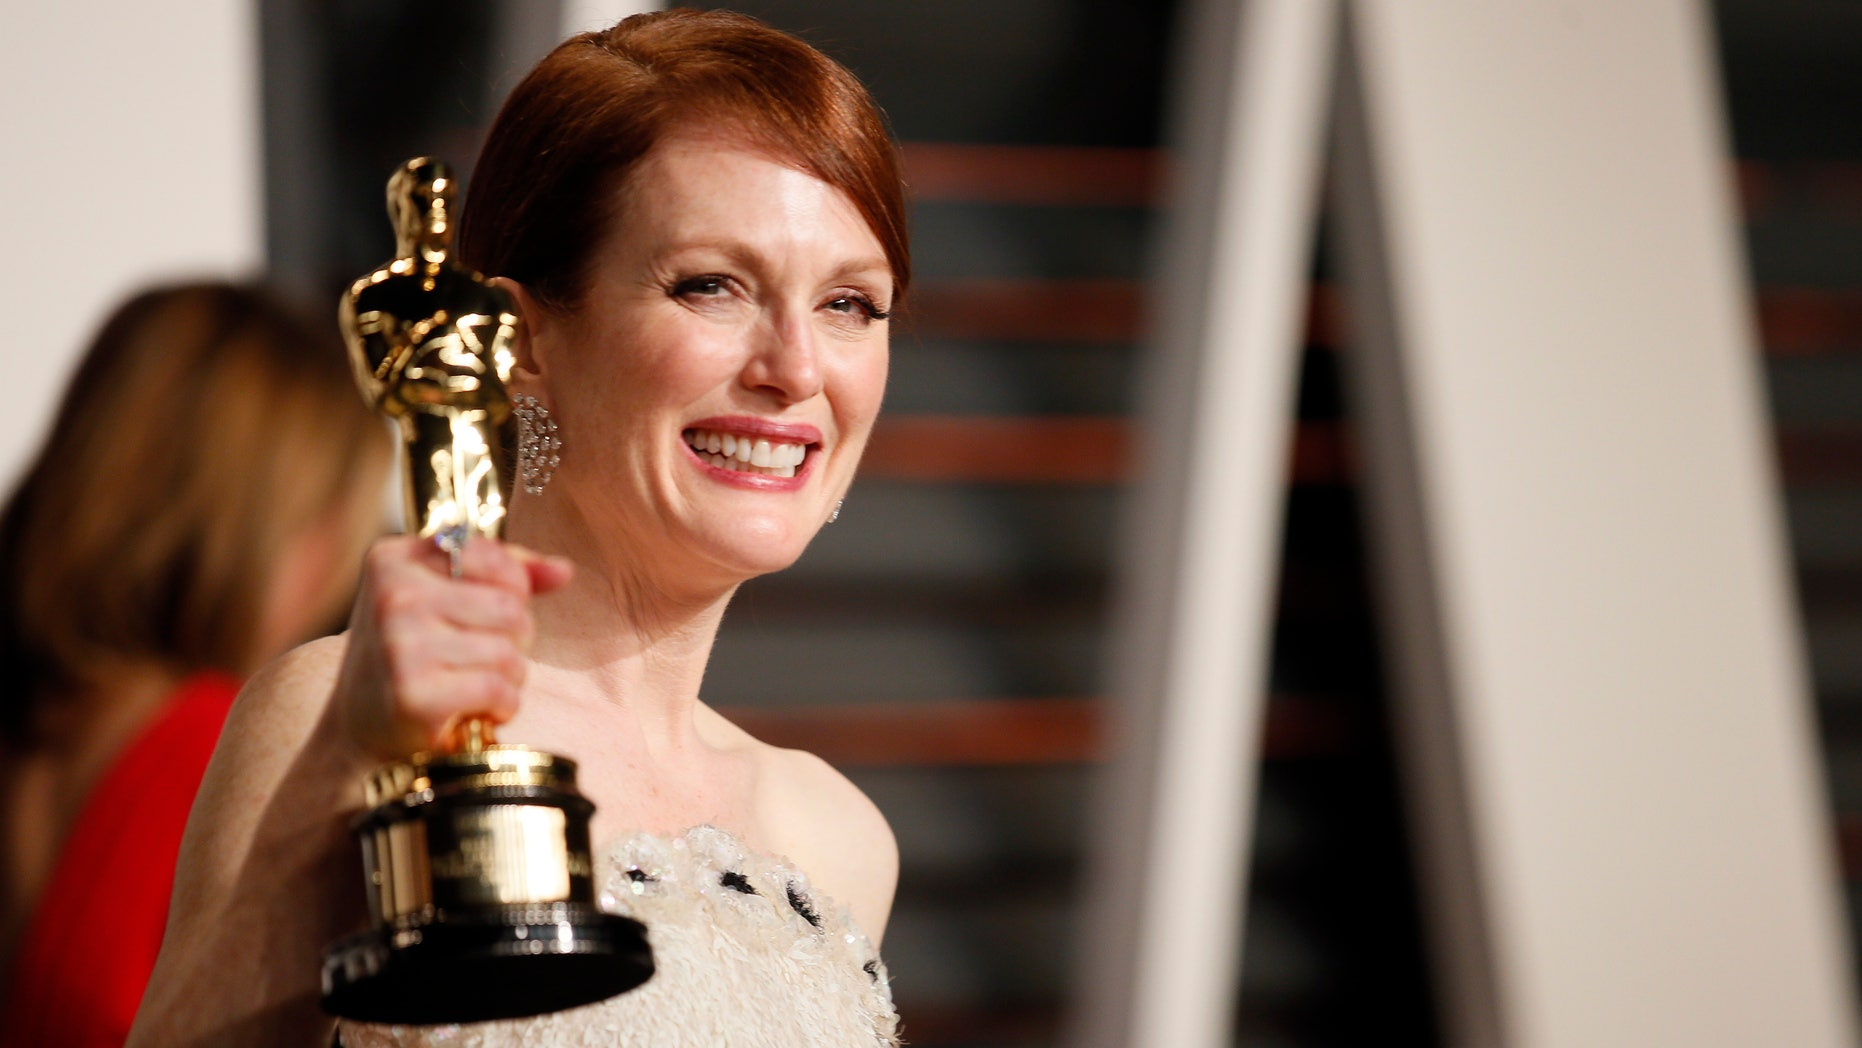 """Actress Julianne Moore with her Best Actress award for her role in the film """"Still Alice""""arrives at the 2015 Vanity Fair Oscar Party in Beverly Hills, California February 22, 2015. REUTERS/Danny Moloshok"""